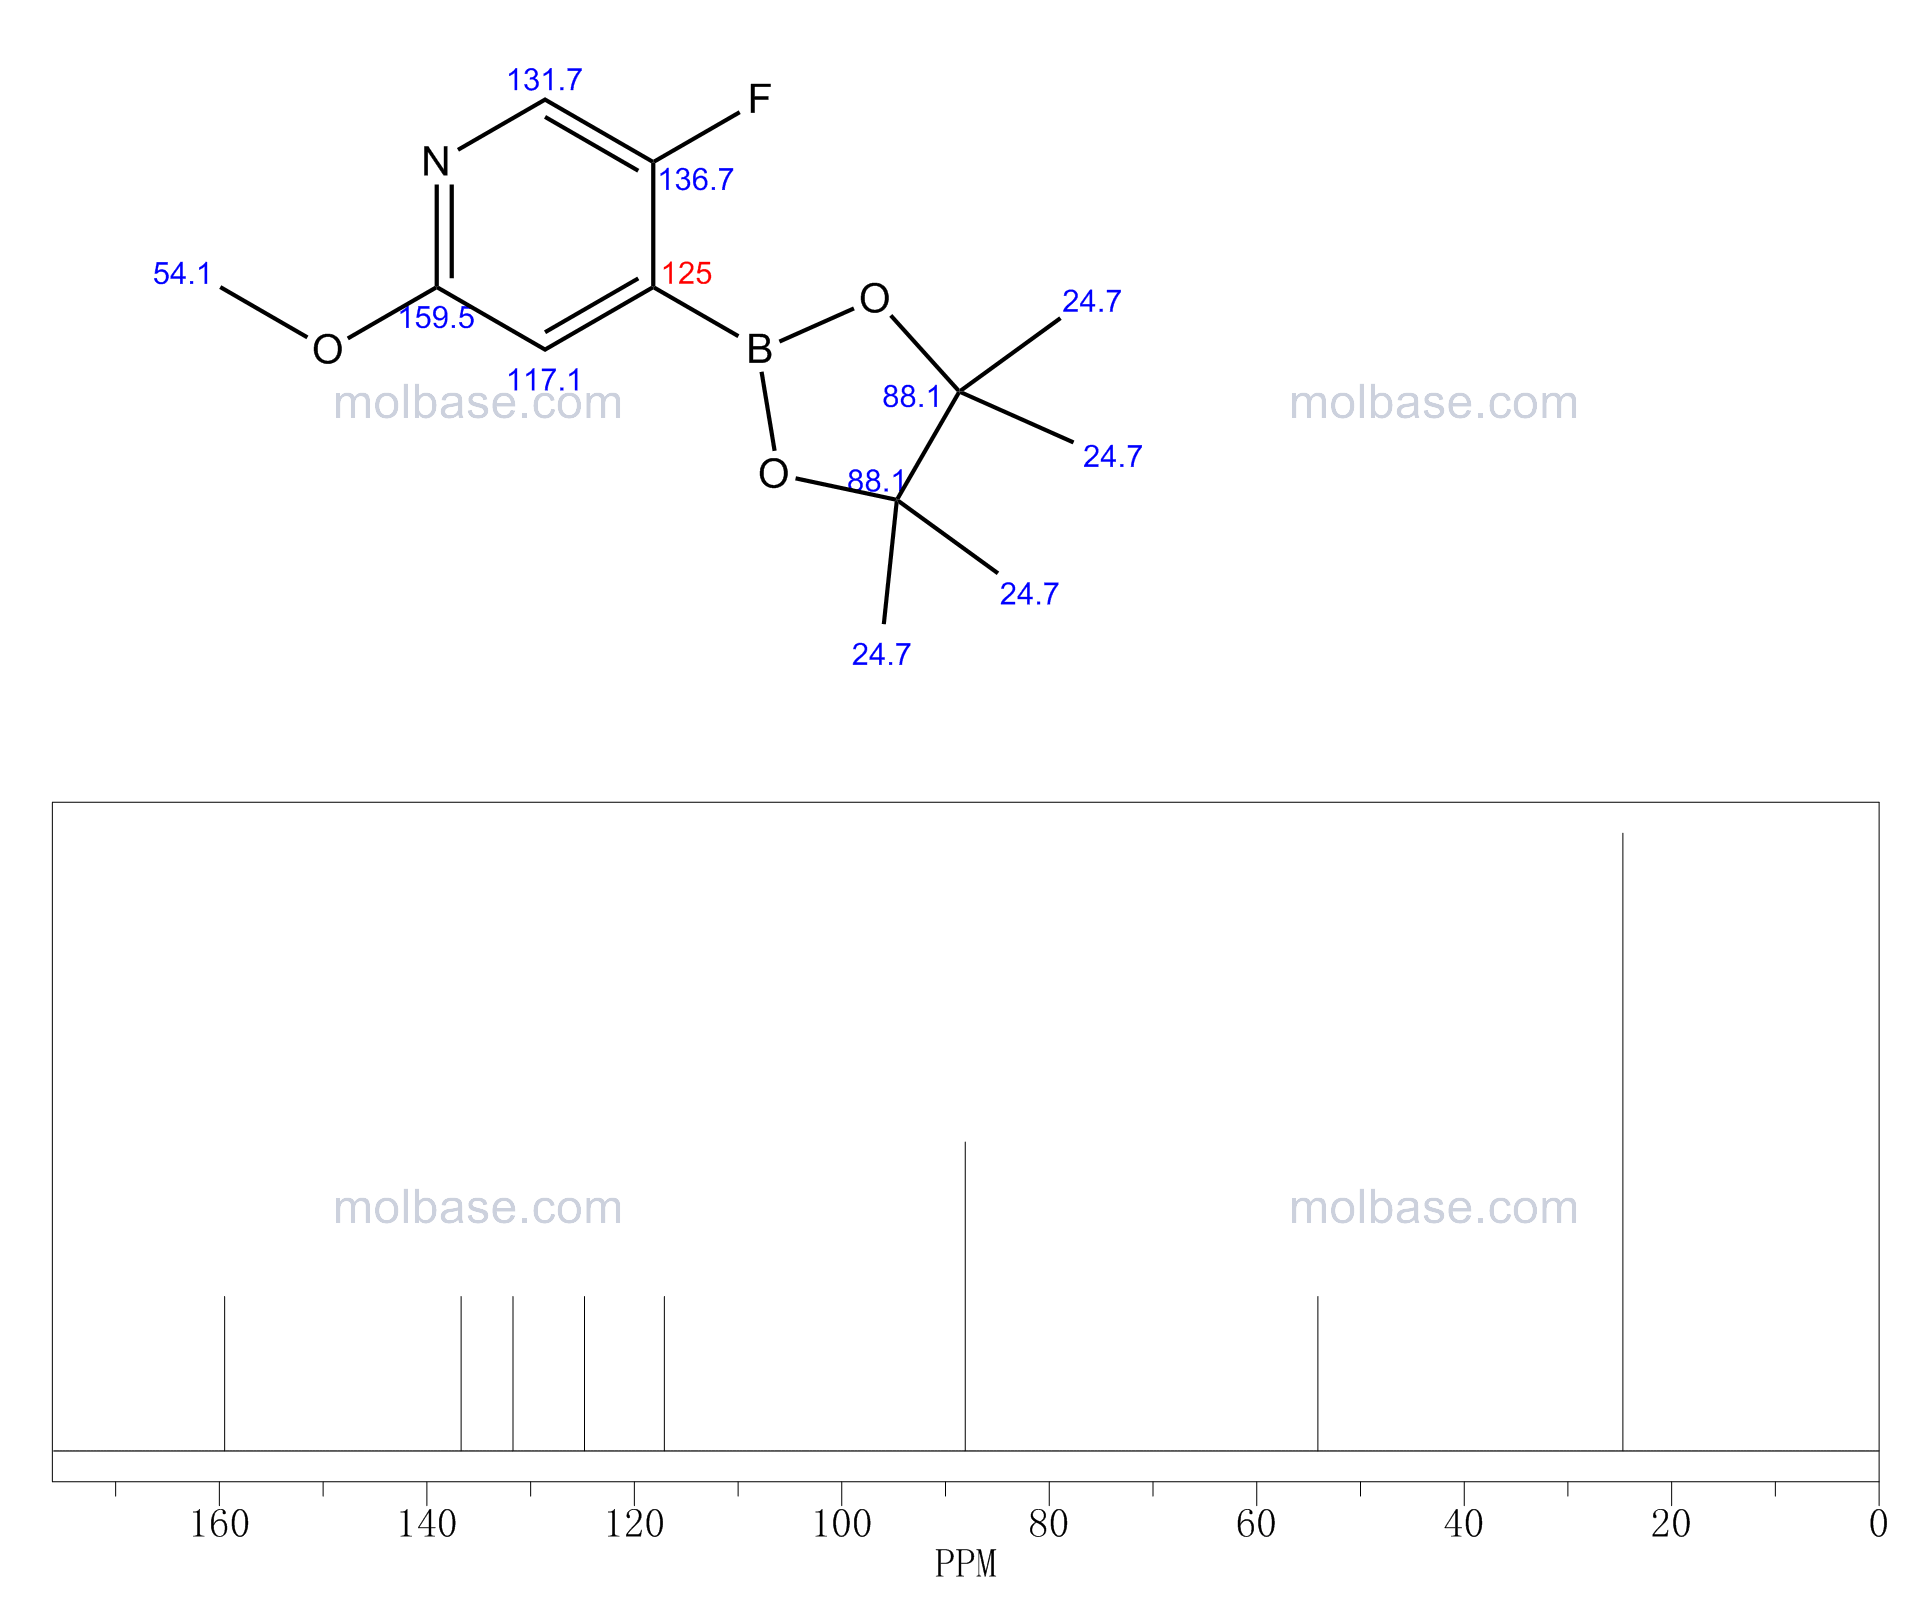 5-Fluoro-2-methoxy-4-(4,4,5,5-tetramethyl-1,3,2-dioxaborolan-2-yl)pyridine NMR spectra analysis, Chemical CAS NO. 1315351-46-2 NMR spectral analysis, 5-Fluoro-2-methoxy-4-(4,4,5,5-tetramethyl-1,3,2-dioxaborolan-2-yl)pyridine C-NMR spectrum